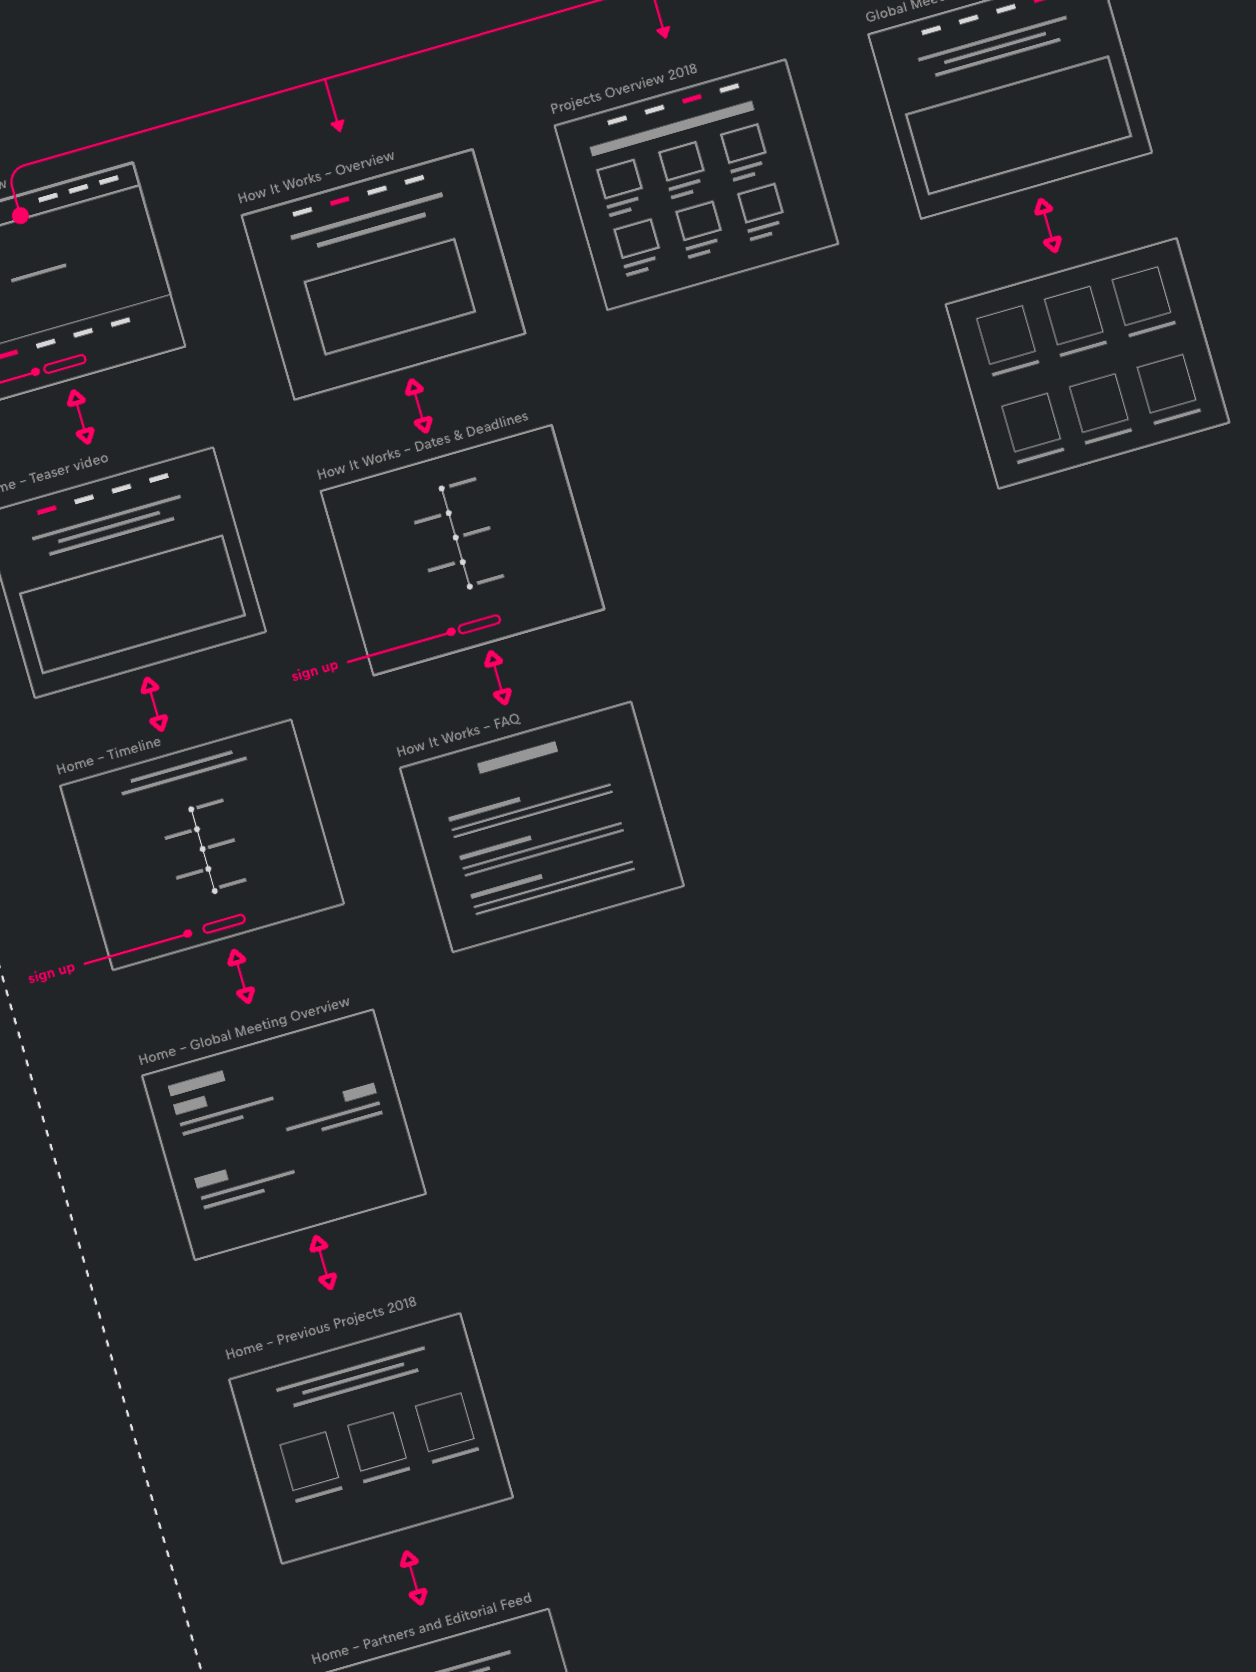 A preview of the user flow for the website